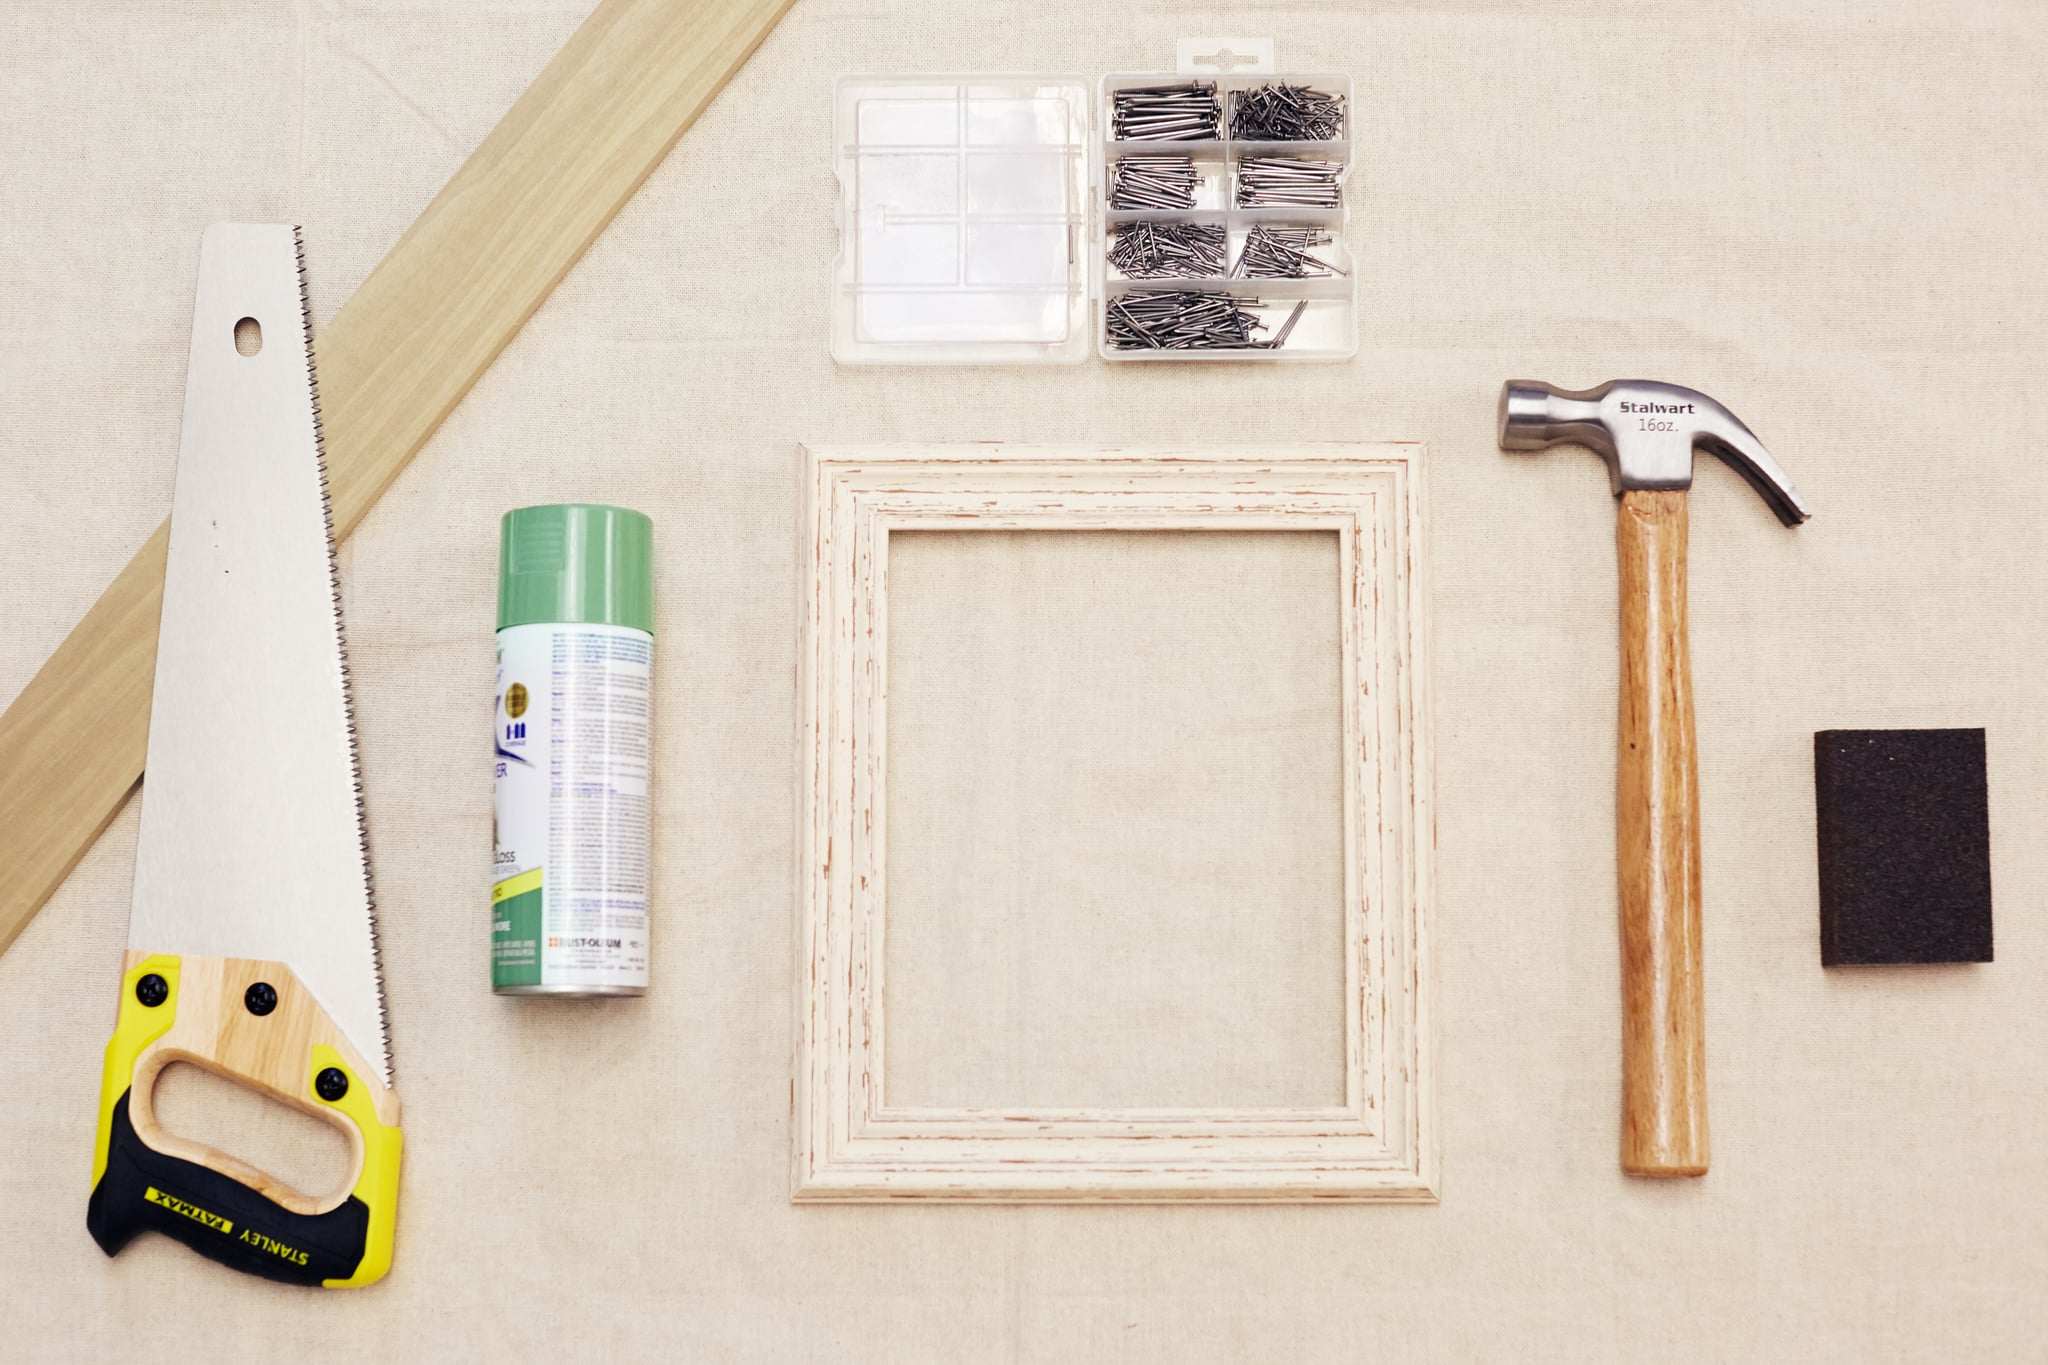 DIY Picture-Frame Shelf | POPSUGAR Smart Living